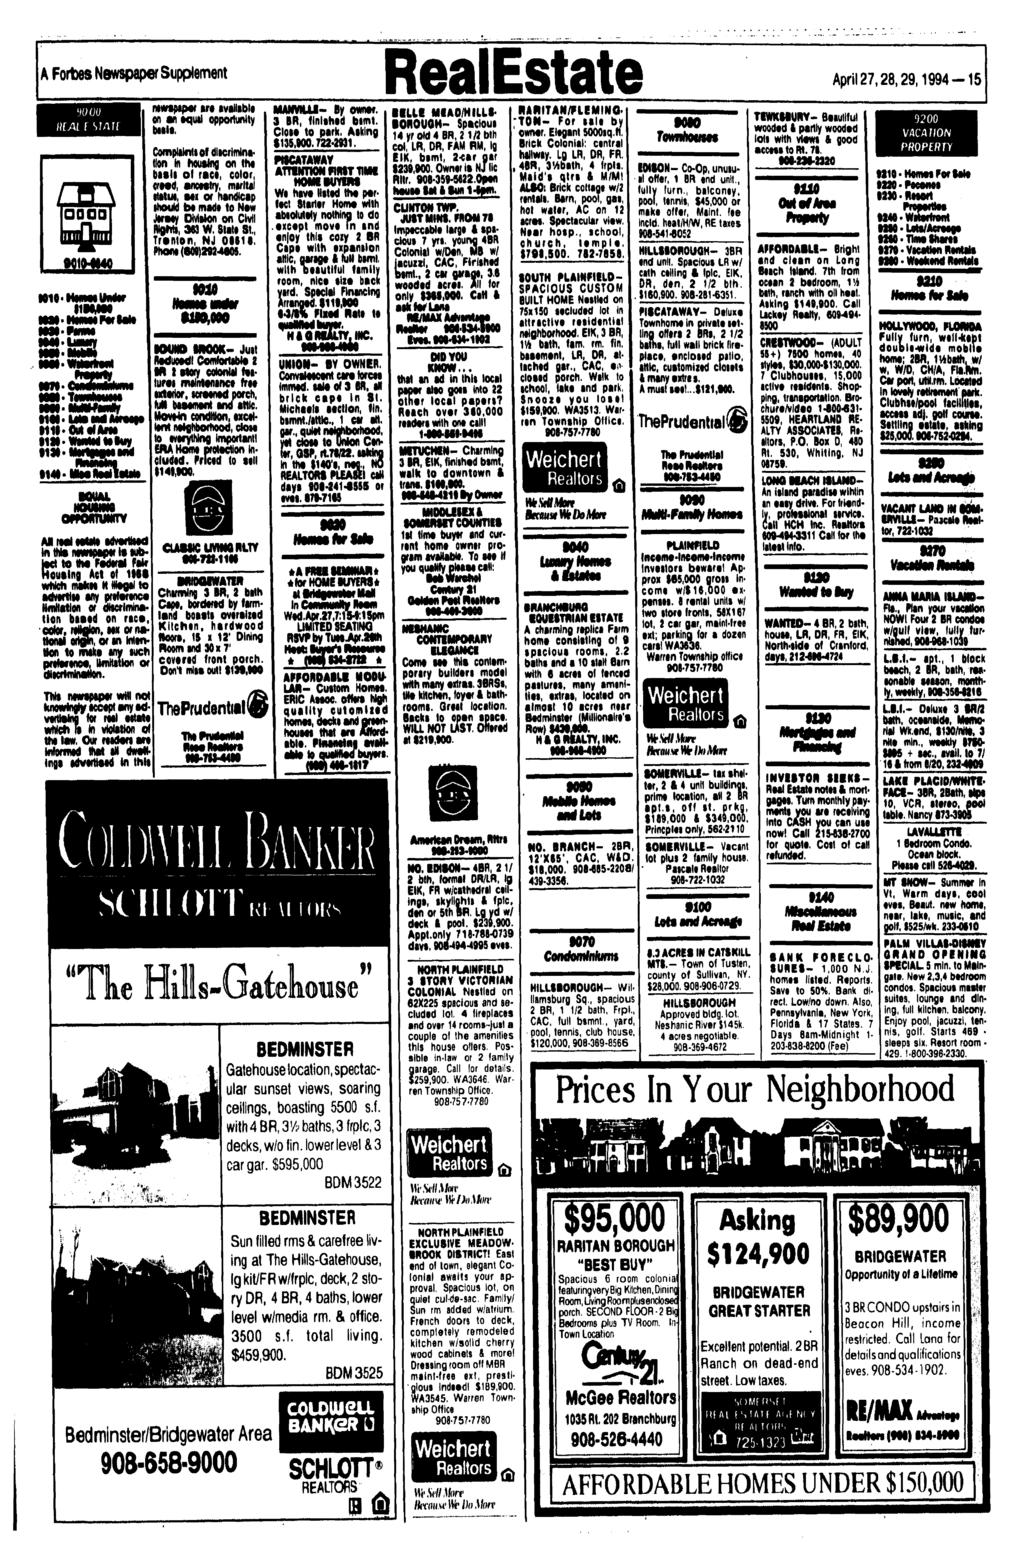 A FortMS Newspaper Supplement RealEstate HN i W t^swsnsj lwt^p»awjw In this newspaper It tubioct to tho Fewera* Paw Housing Act ot 1«S wmoh rflakot H wagw to advertite any onfonnco HnHaMor) or